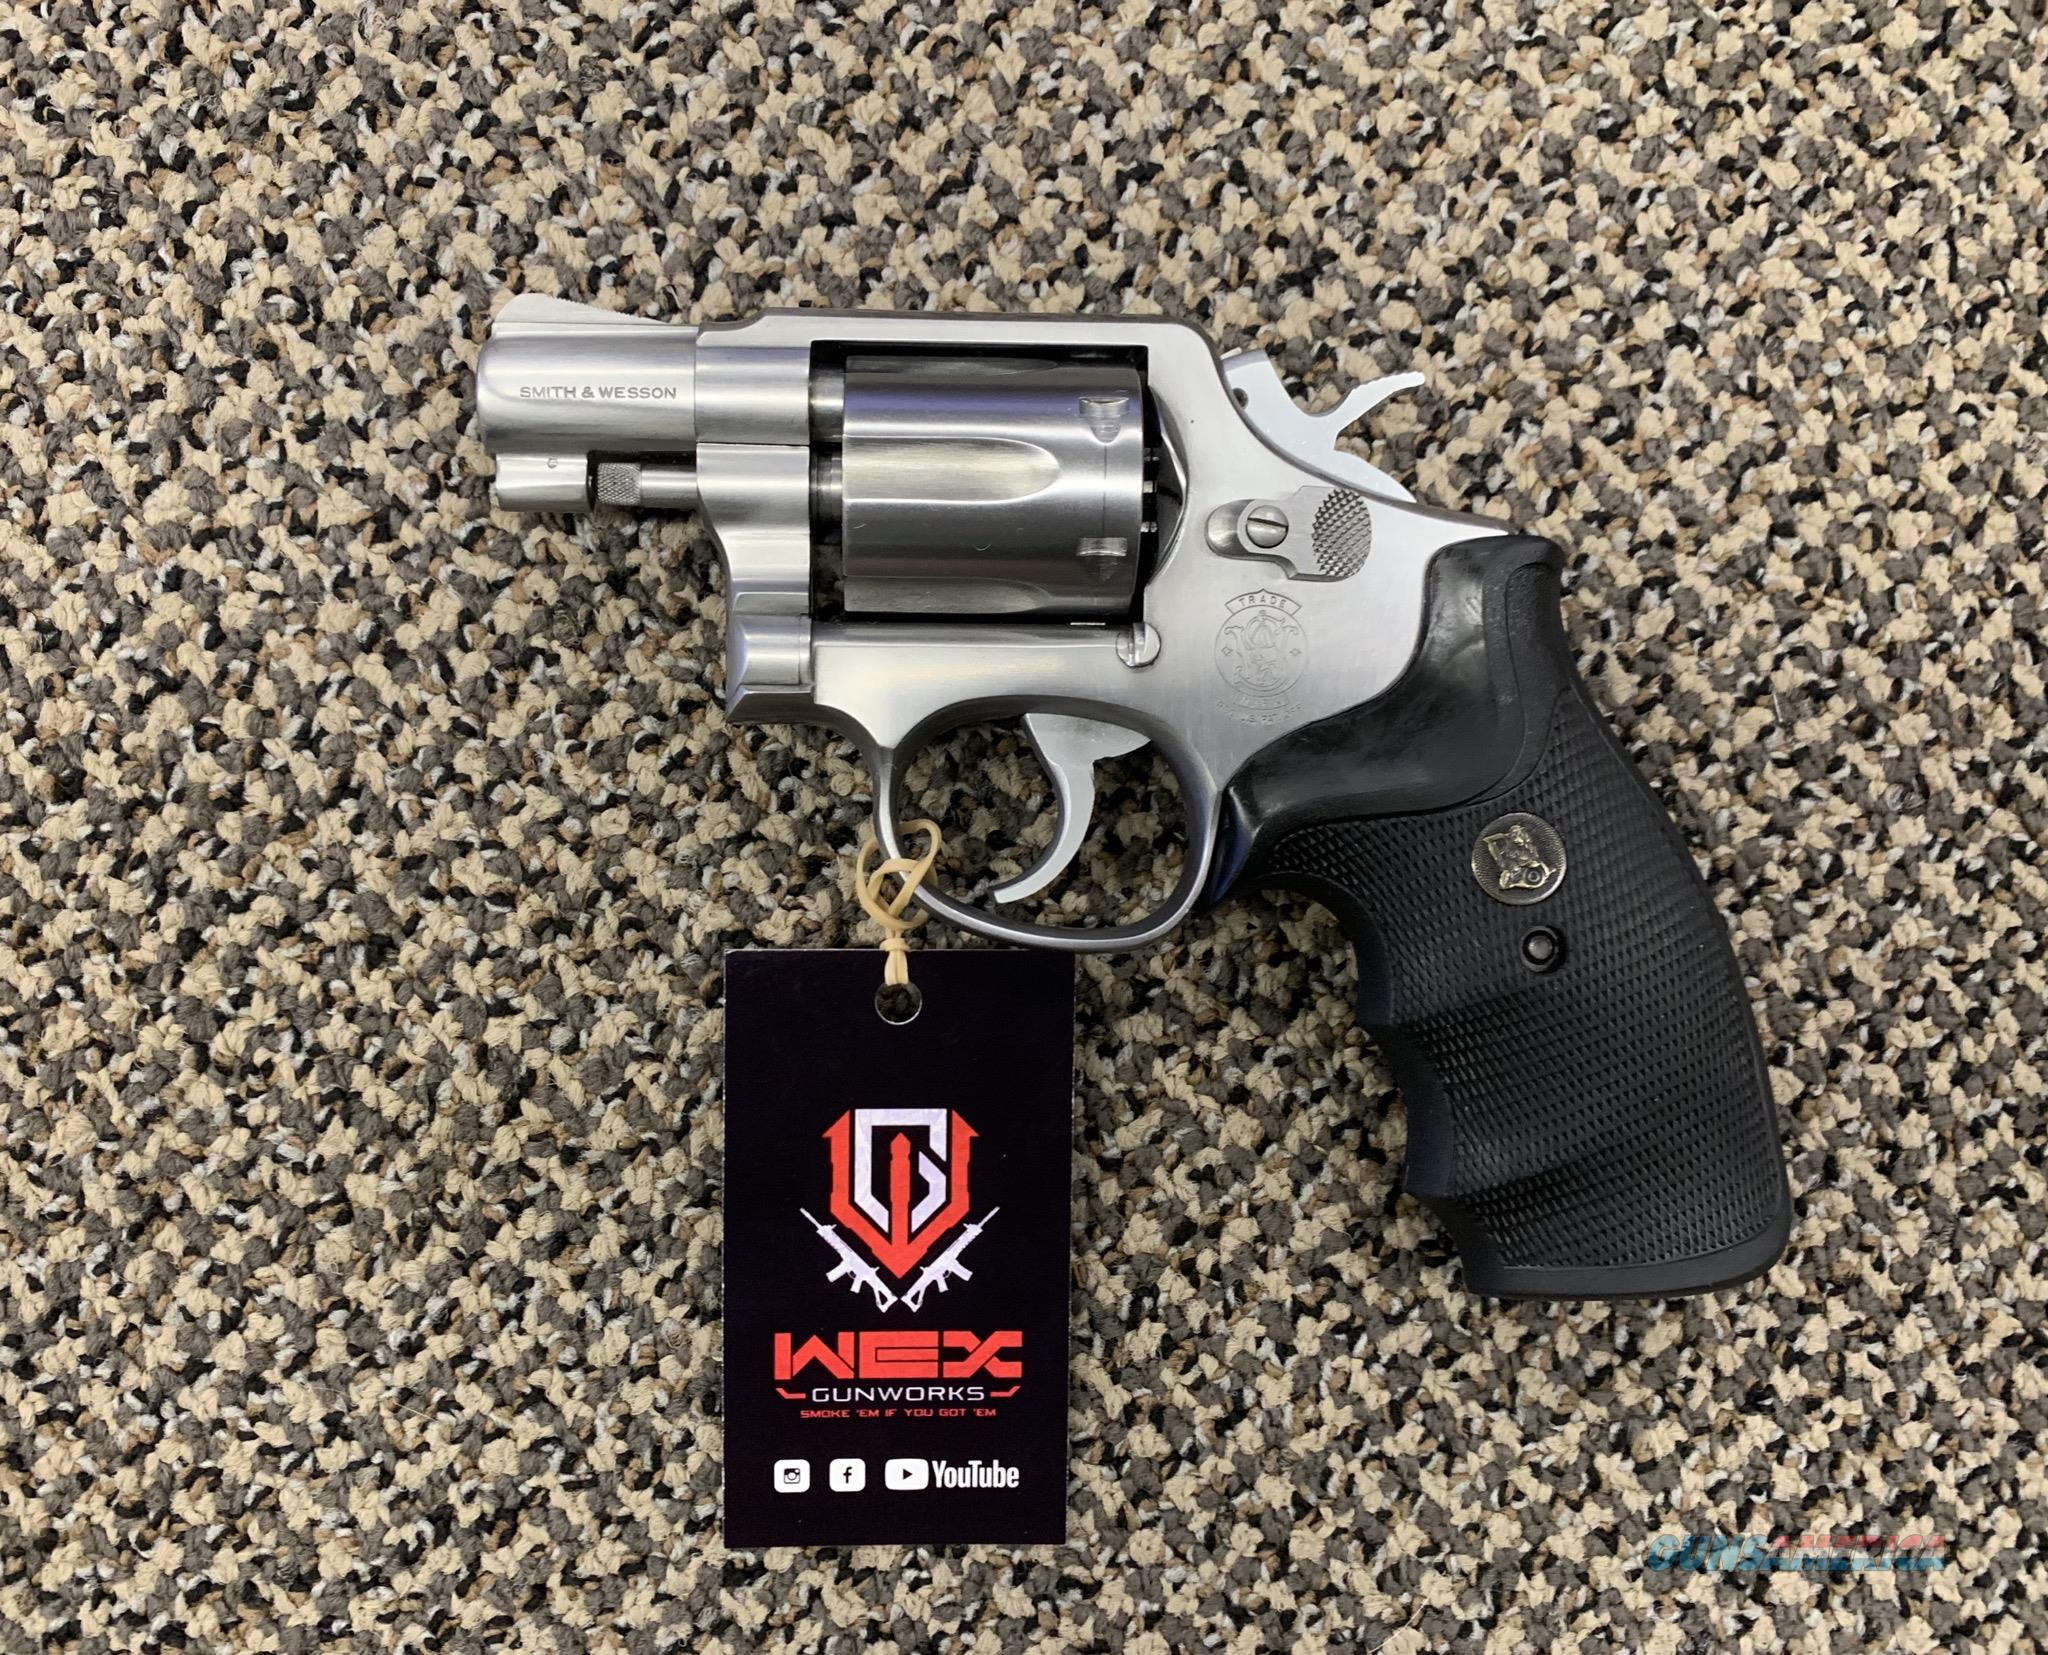 S&W MODEL 64-4 .38 SPECIAL STAINLESS 2 INCH BBL  Guns > Pistols > Smith & Wesson Revolvers > Med. Frame ( K/L )